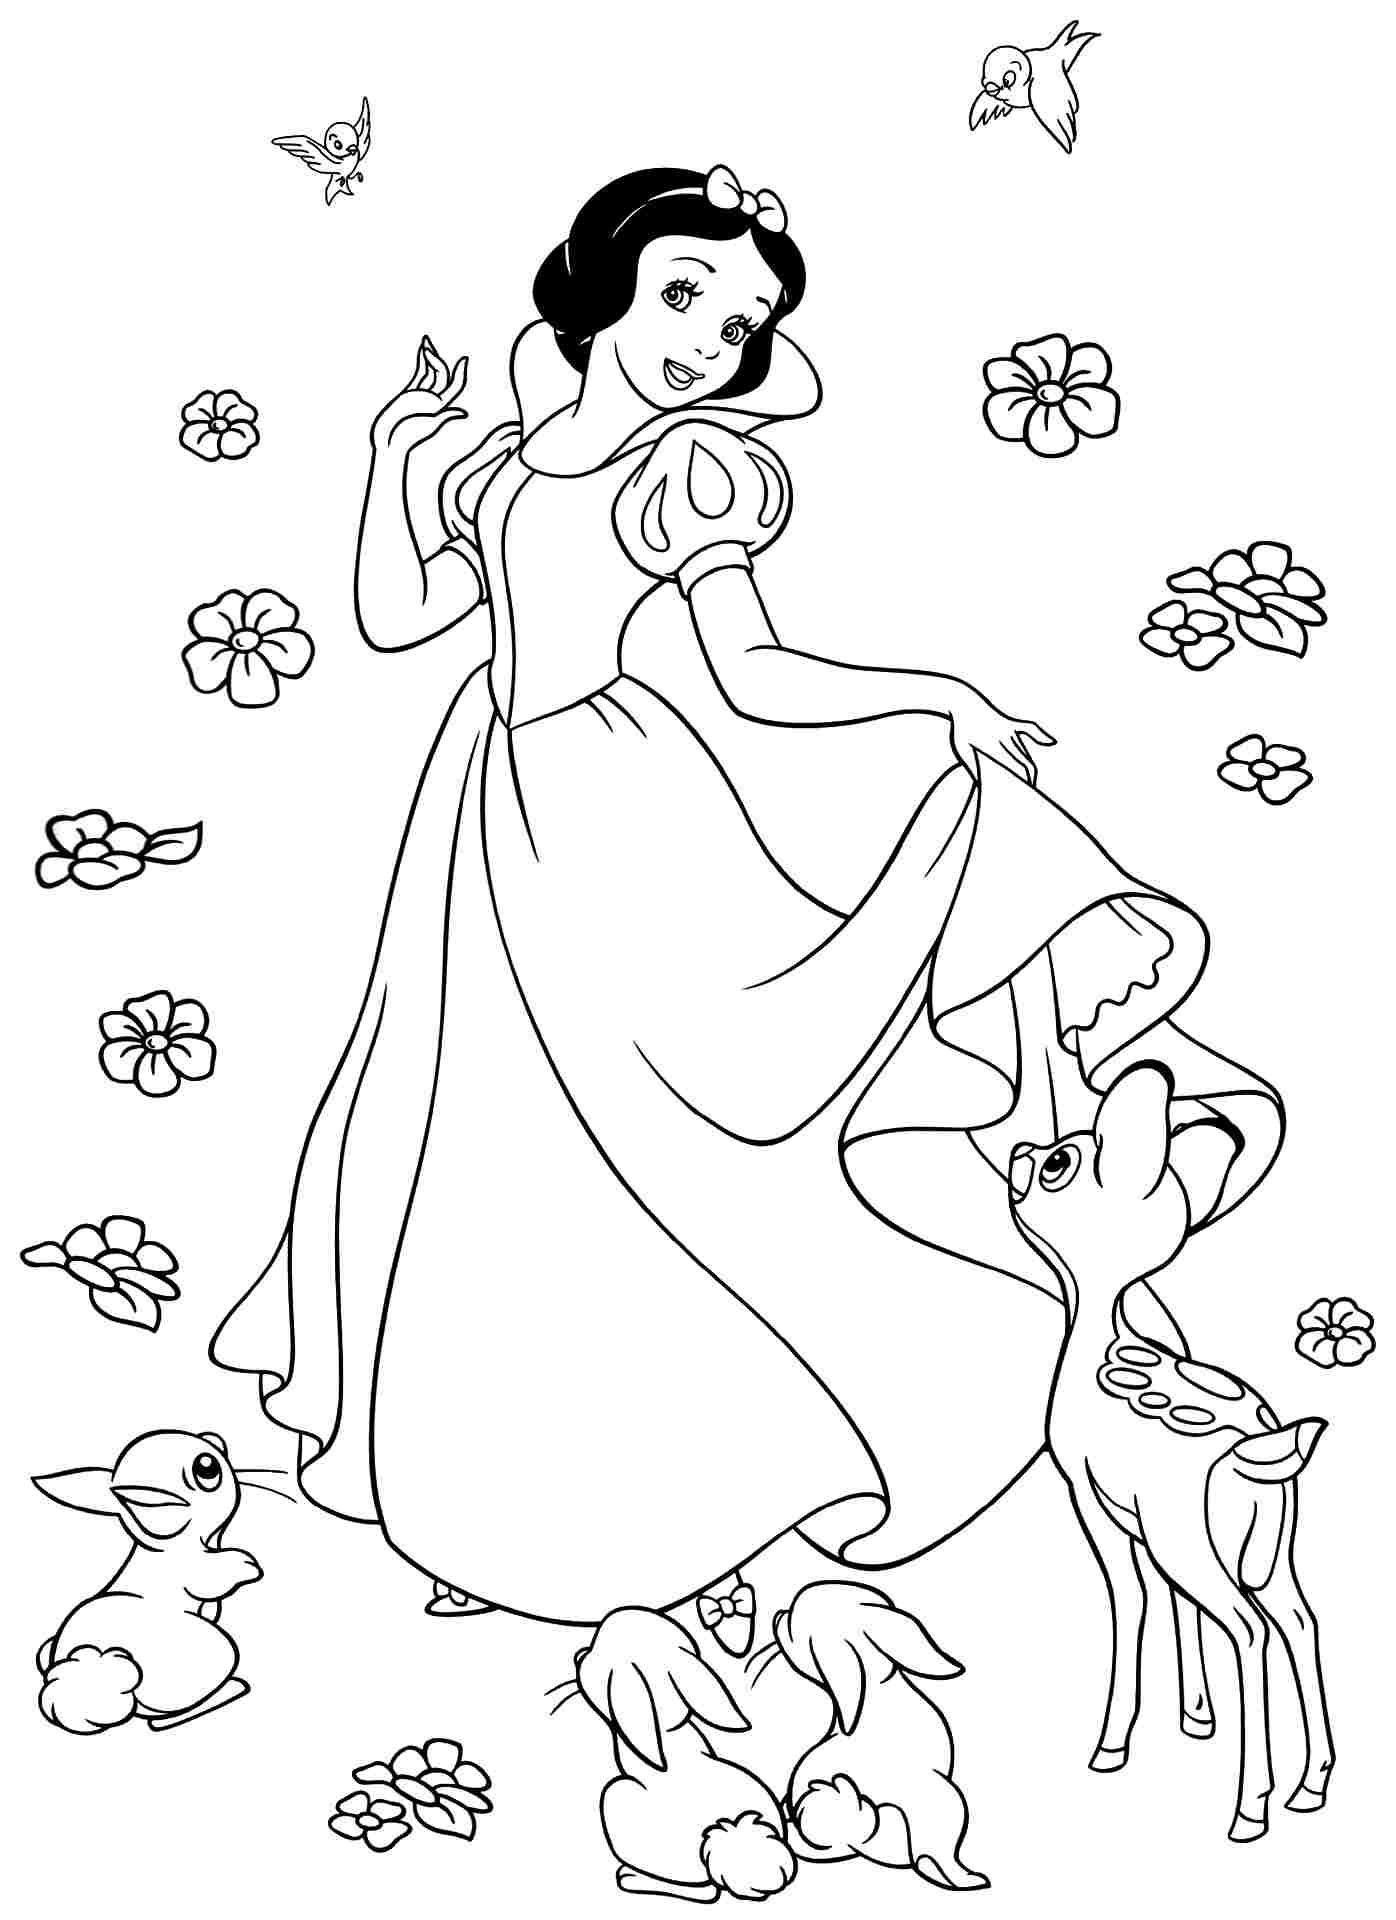 Snow White And The Seven Dwarfs Coloring Pages 49 Jpg 1396 1920 Disney Princess Coloring Pages Princess Coloring Pages Snow White Coloring Pages